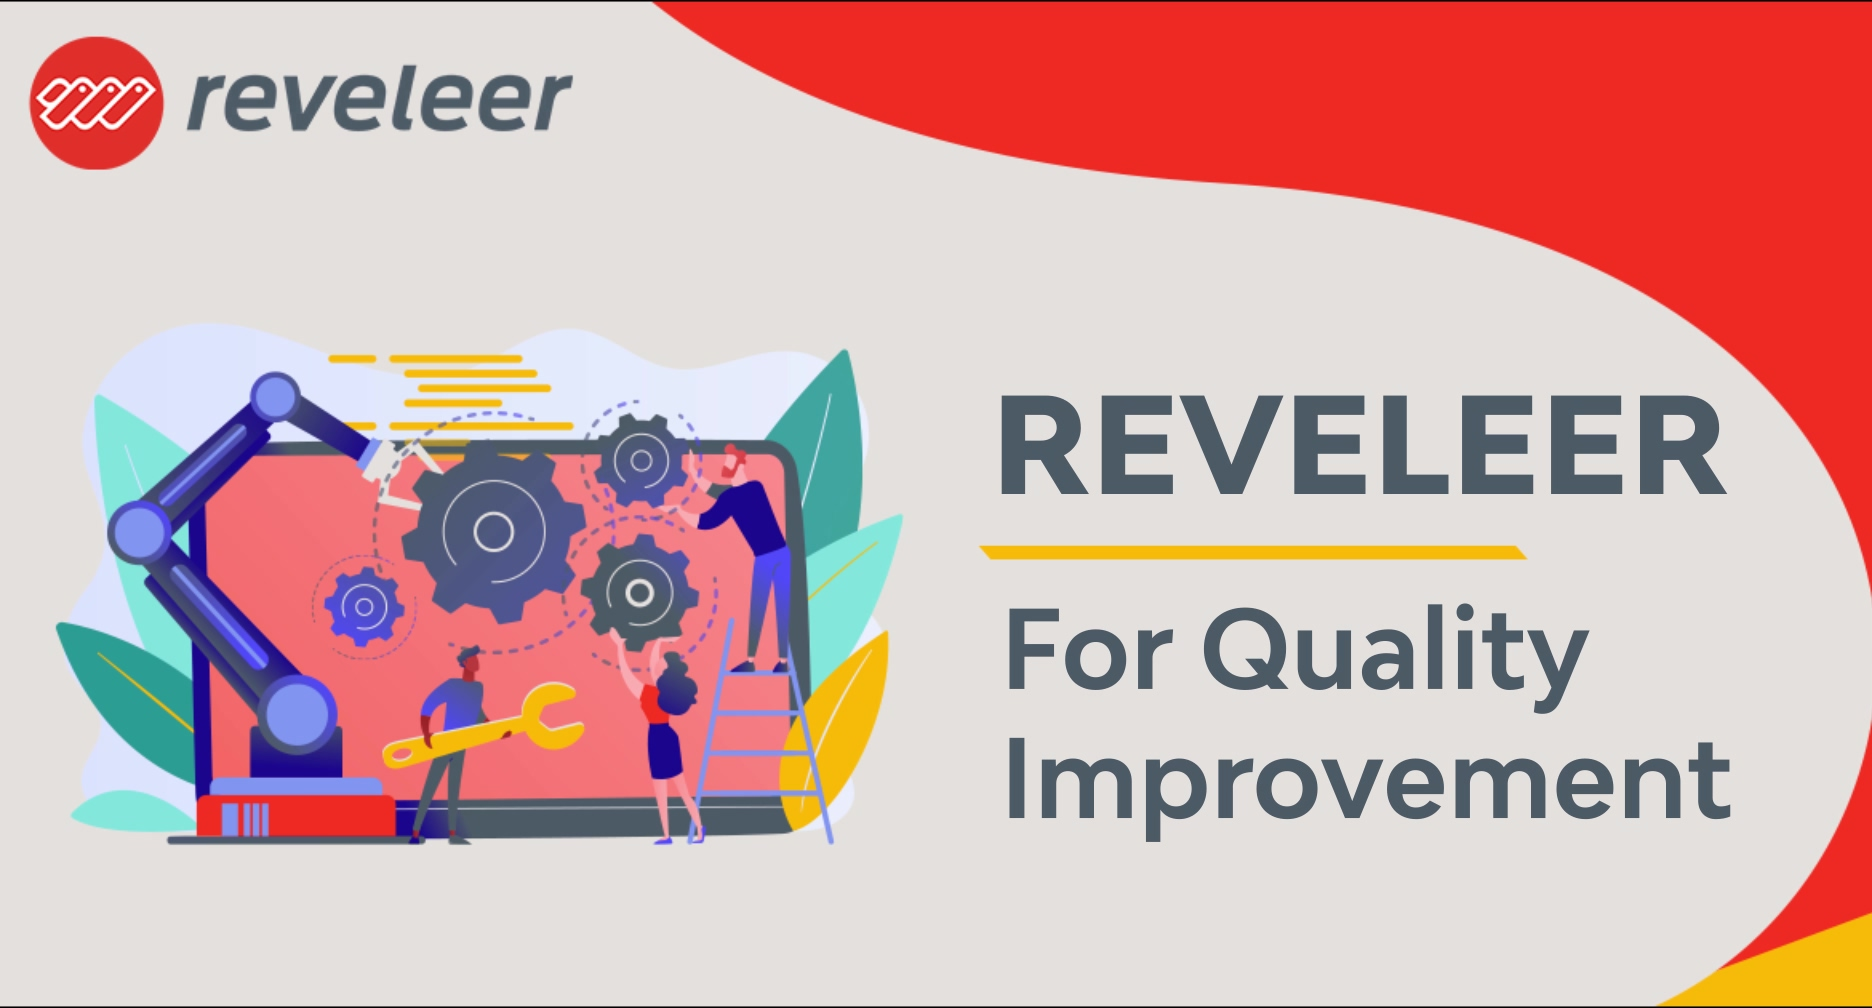 Reveleer for Quality Improvement